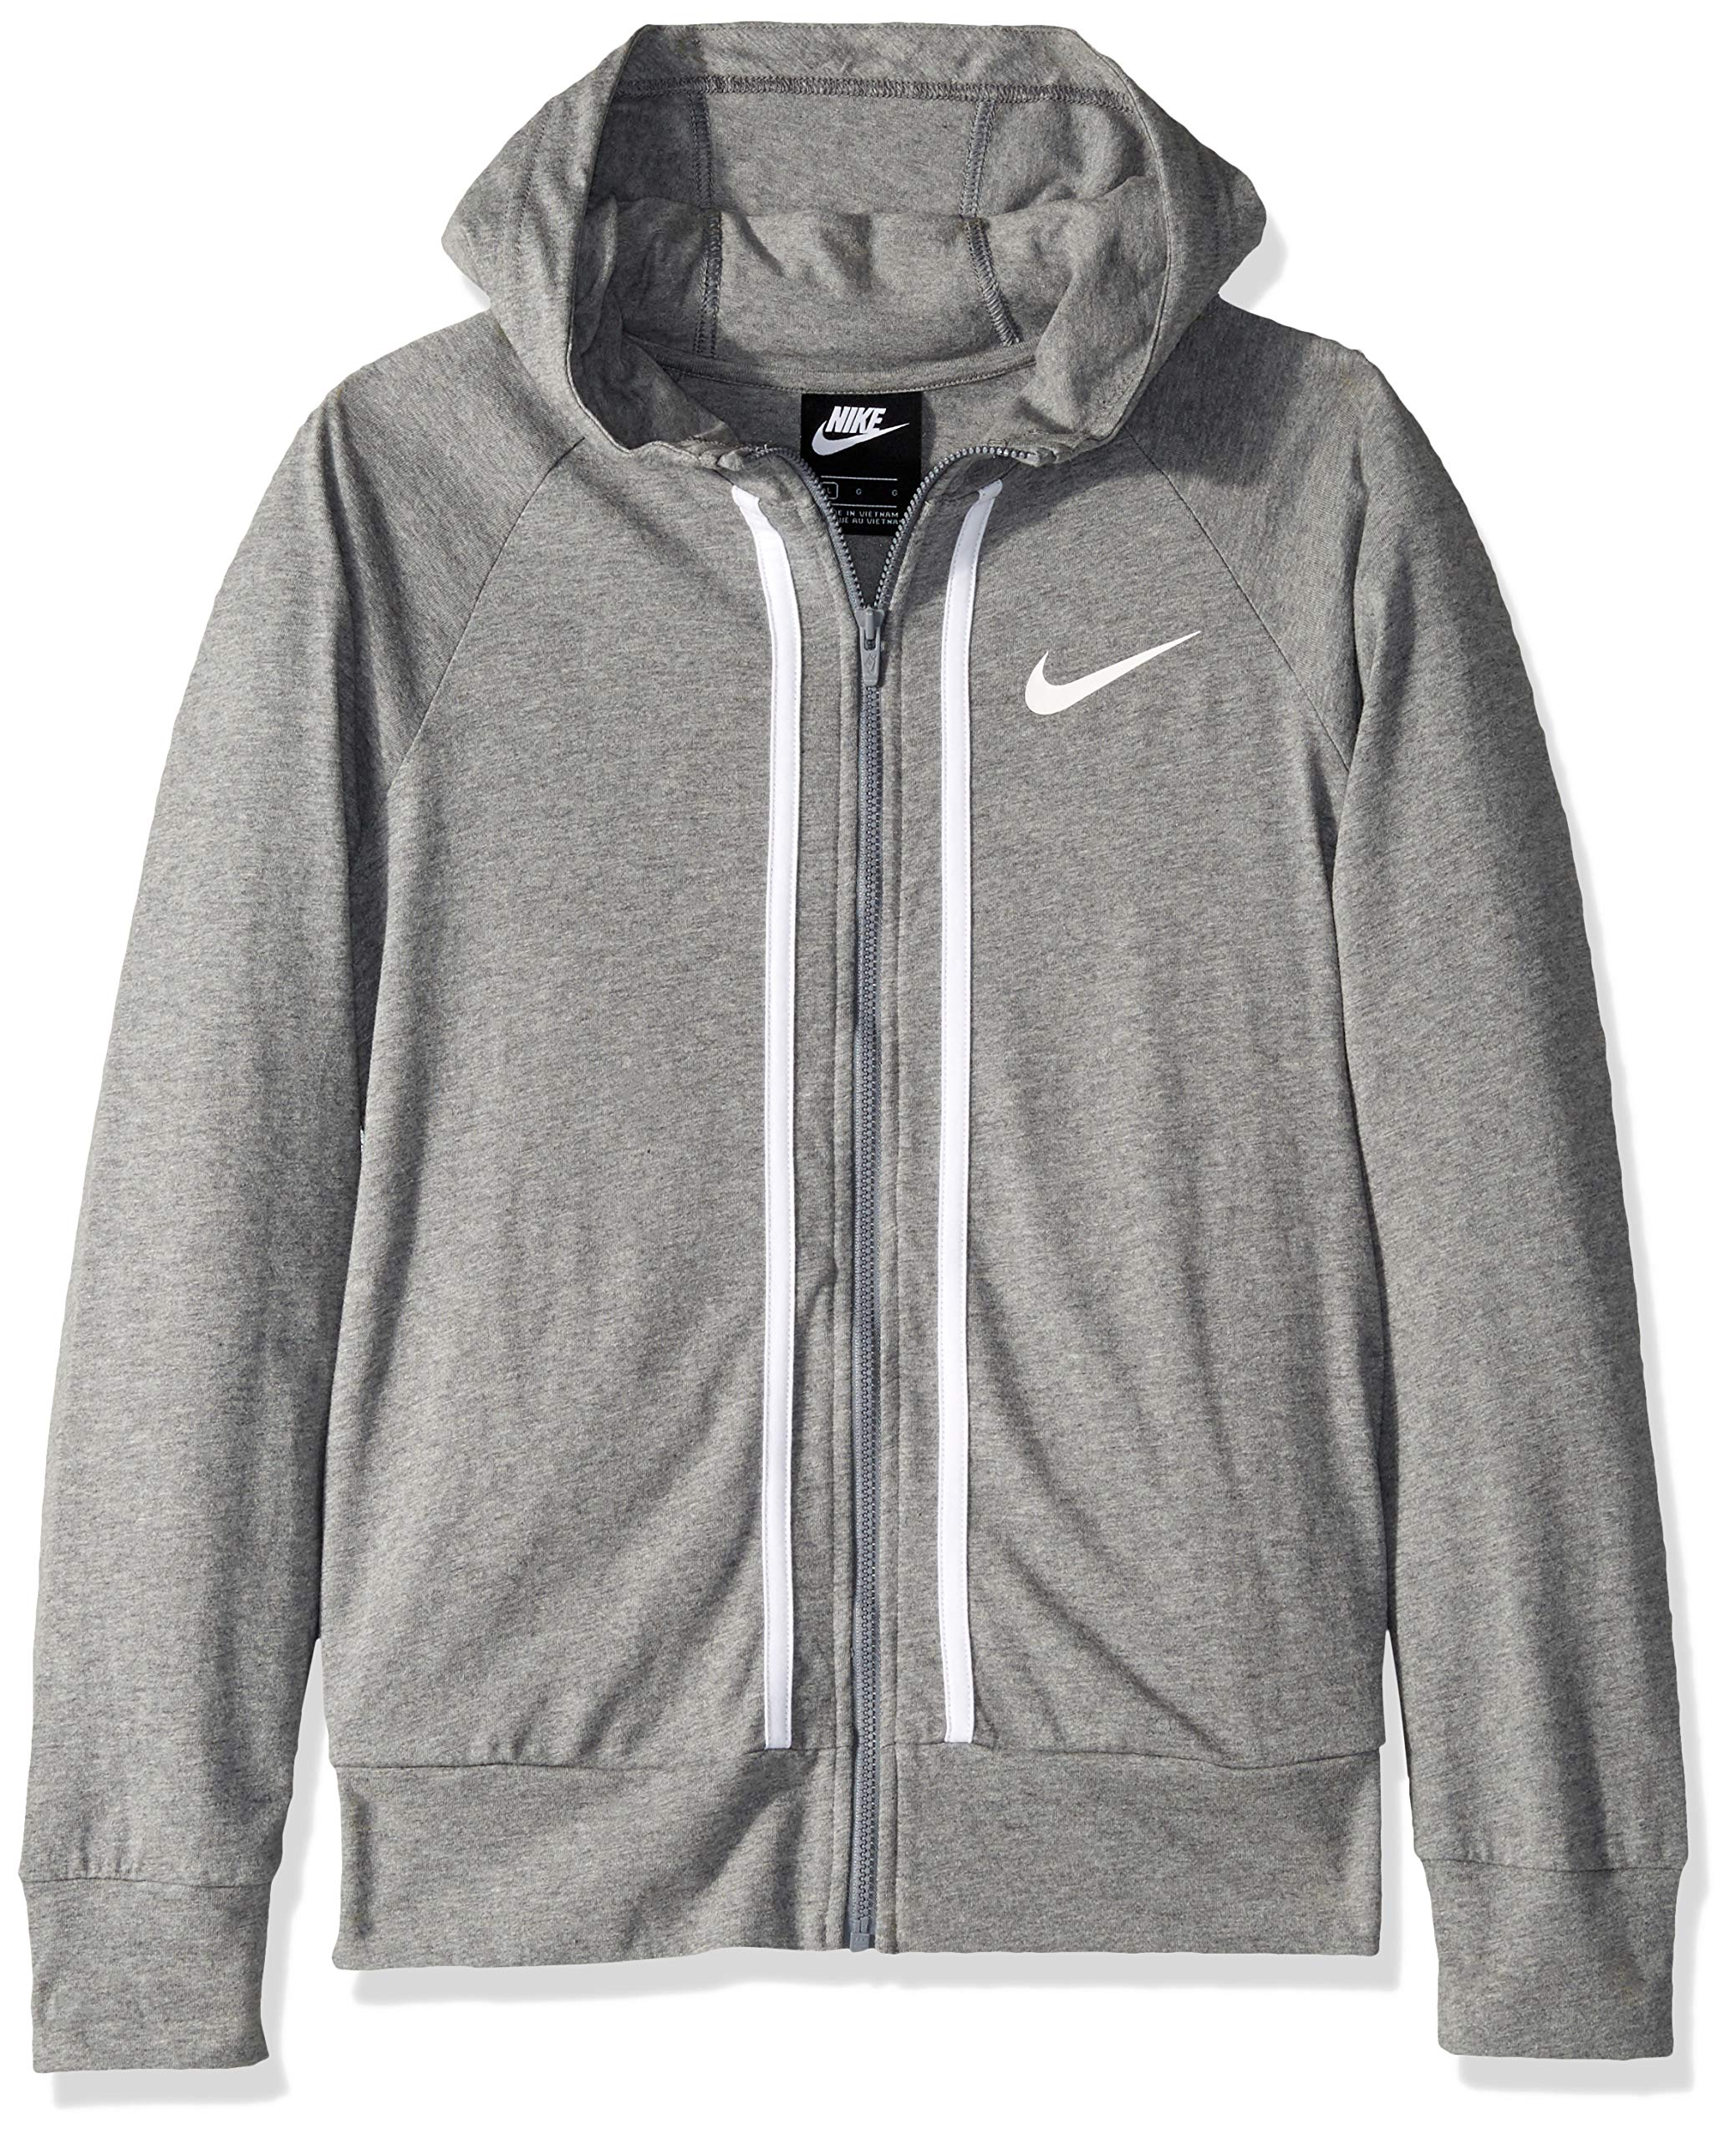 Nike Girl's NSW Full-Zip Jersey, Carbon Heather/White, X-Large by Nike